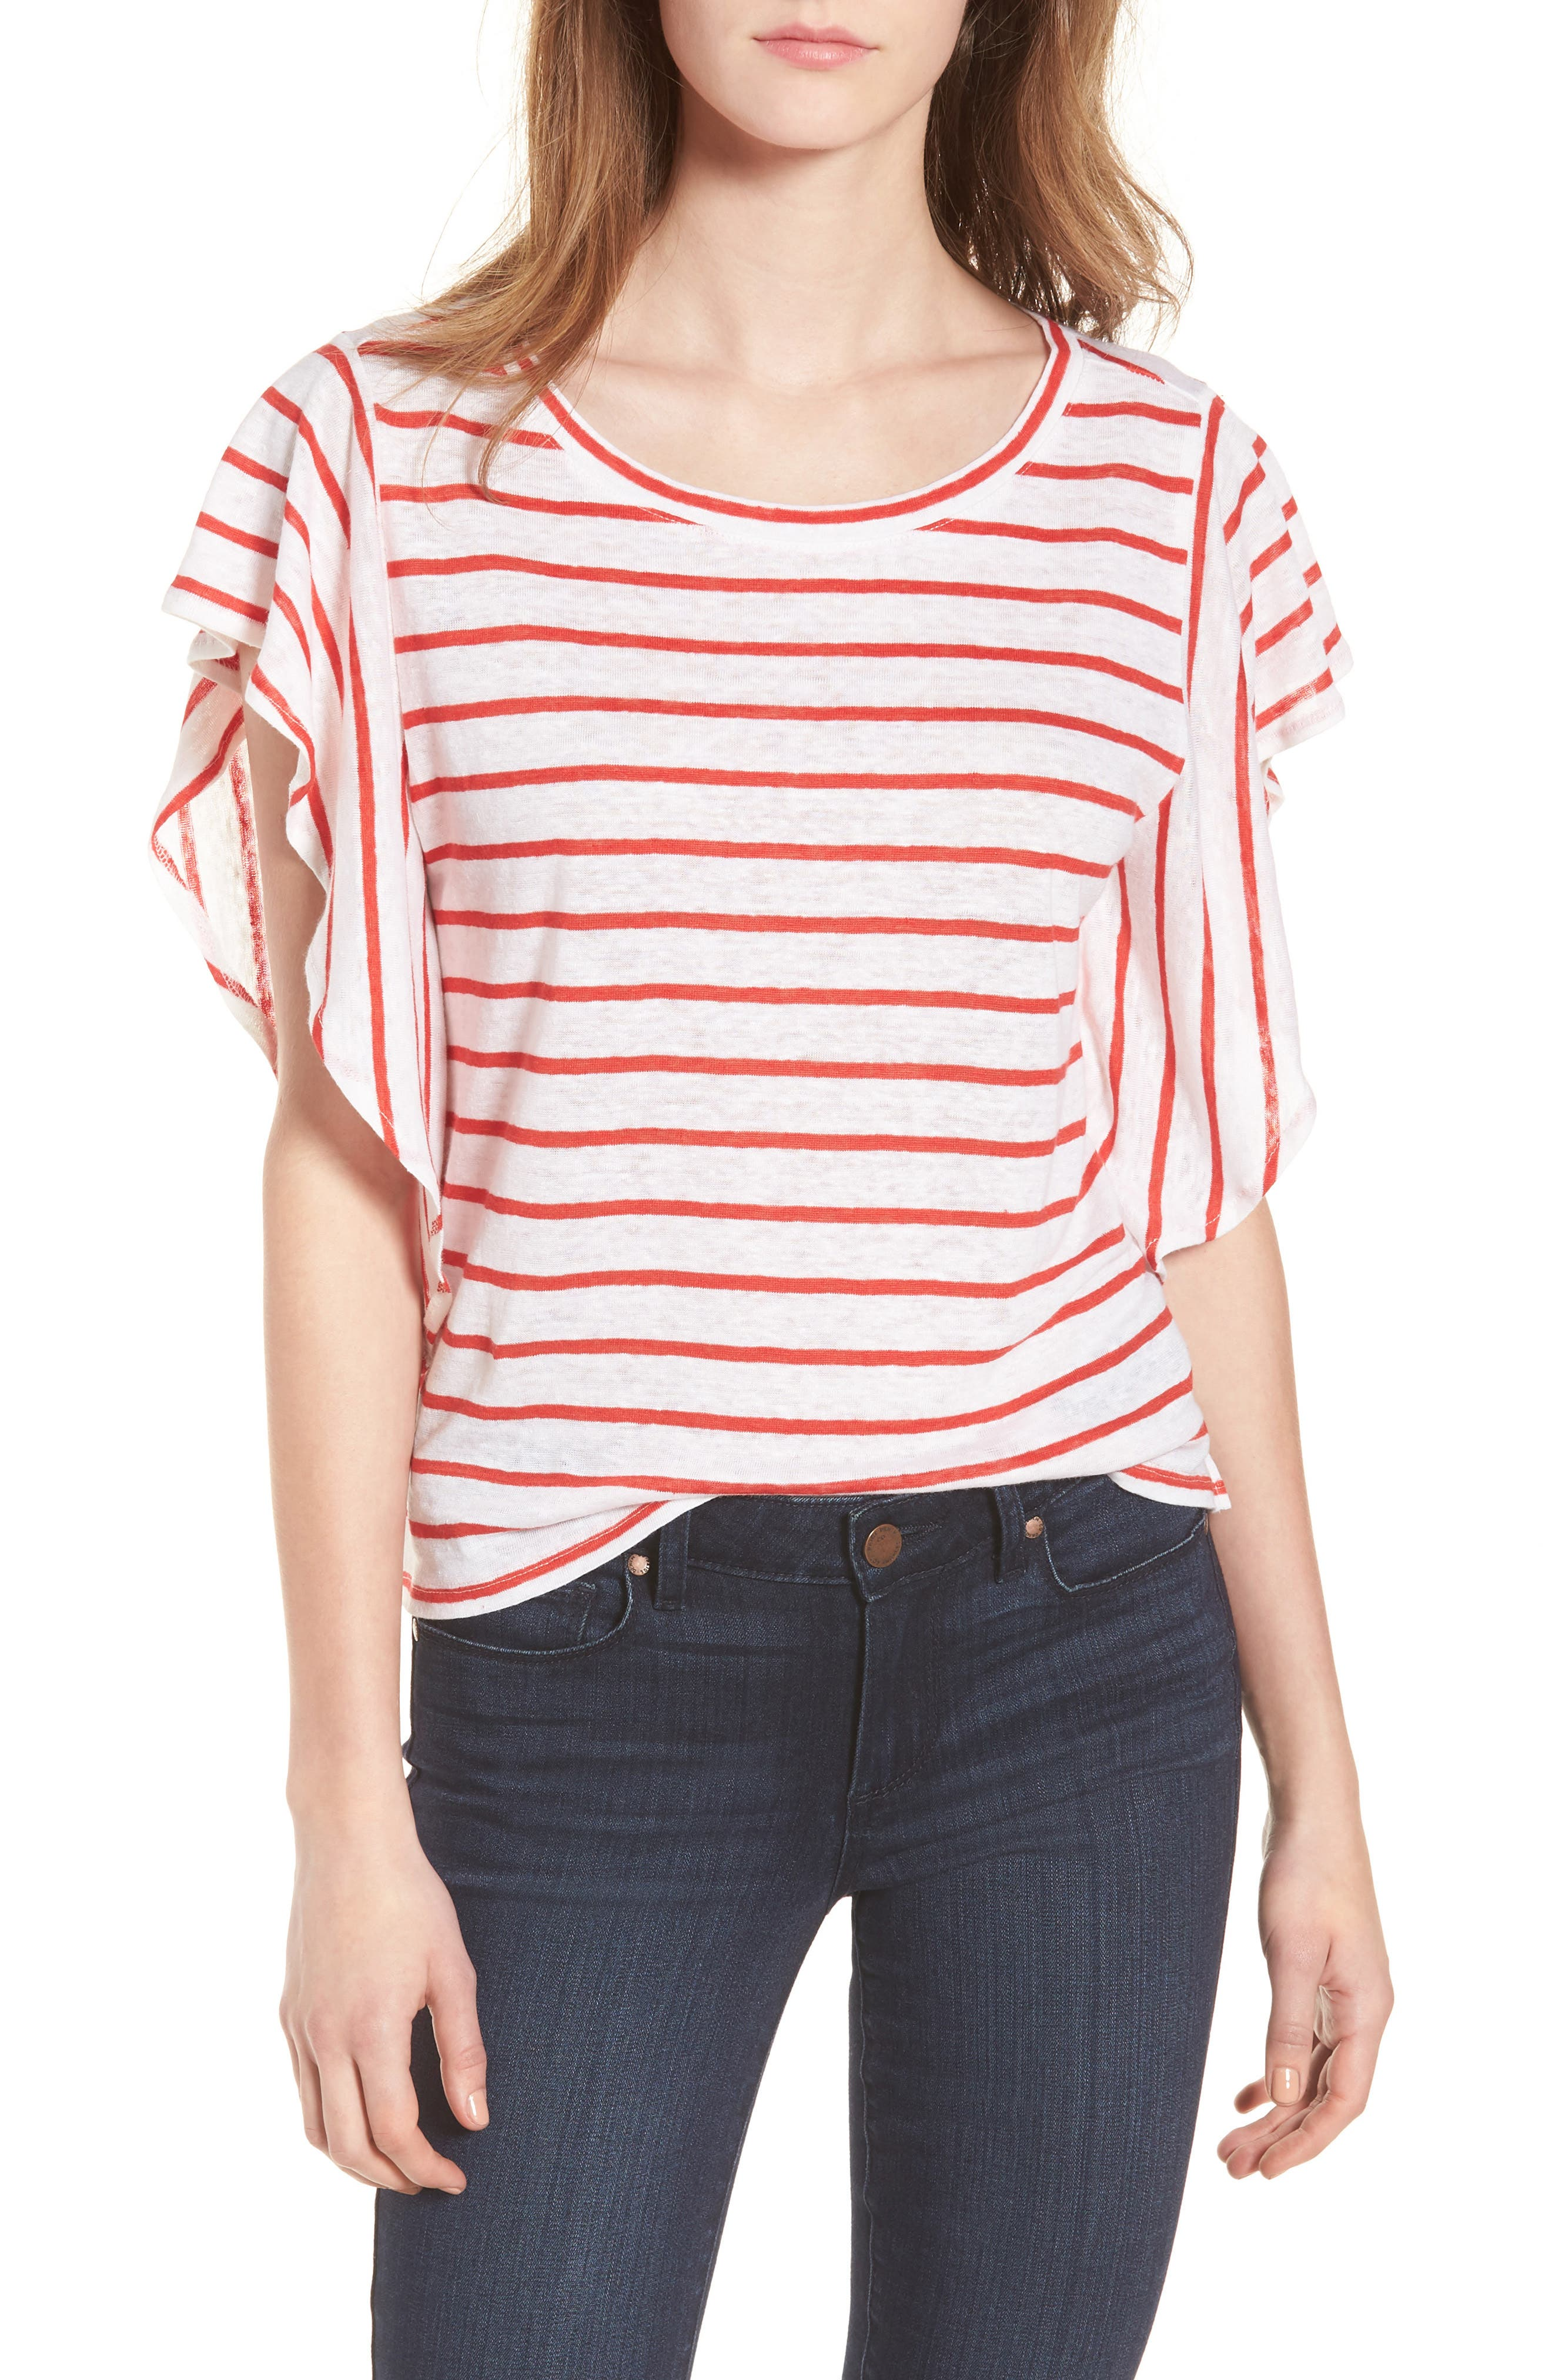 Cannon Stripe Linen Top by Cupcakes And Cashmere